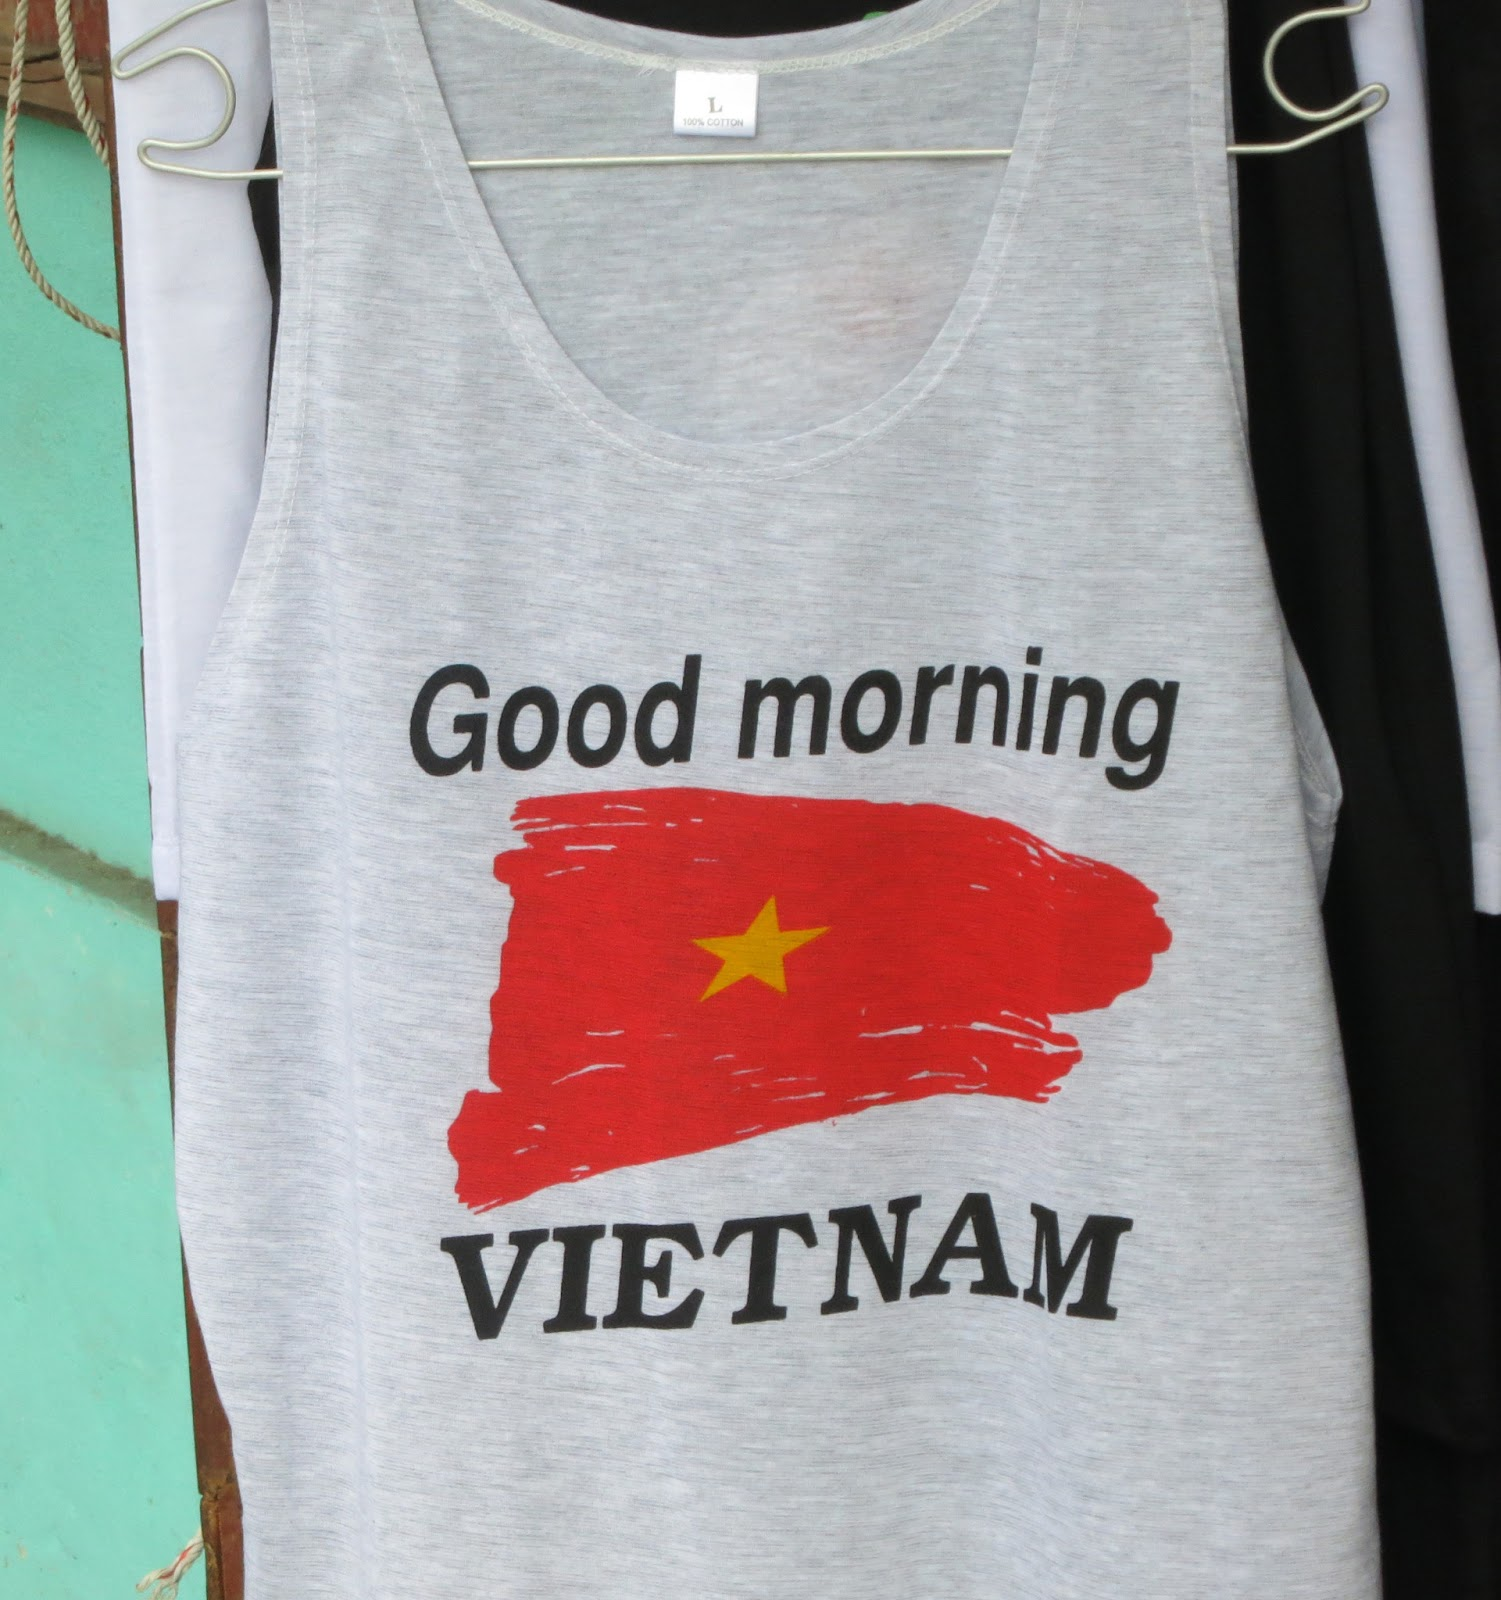 Vietnam is one of the most gay friendly countries we